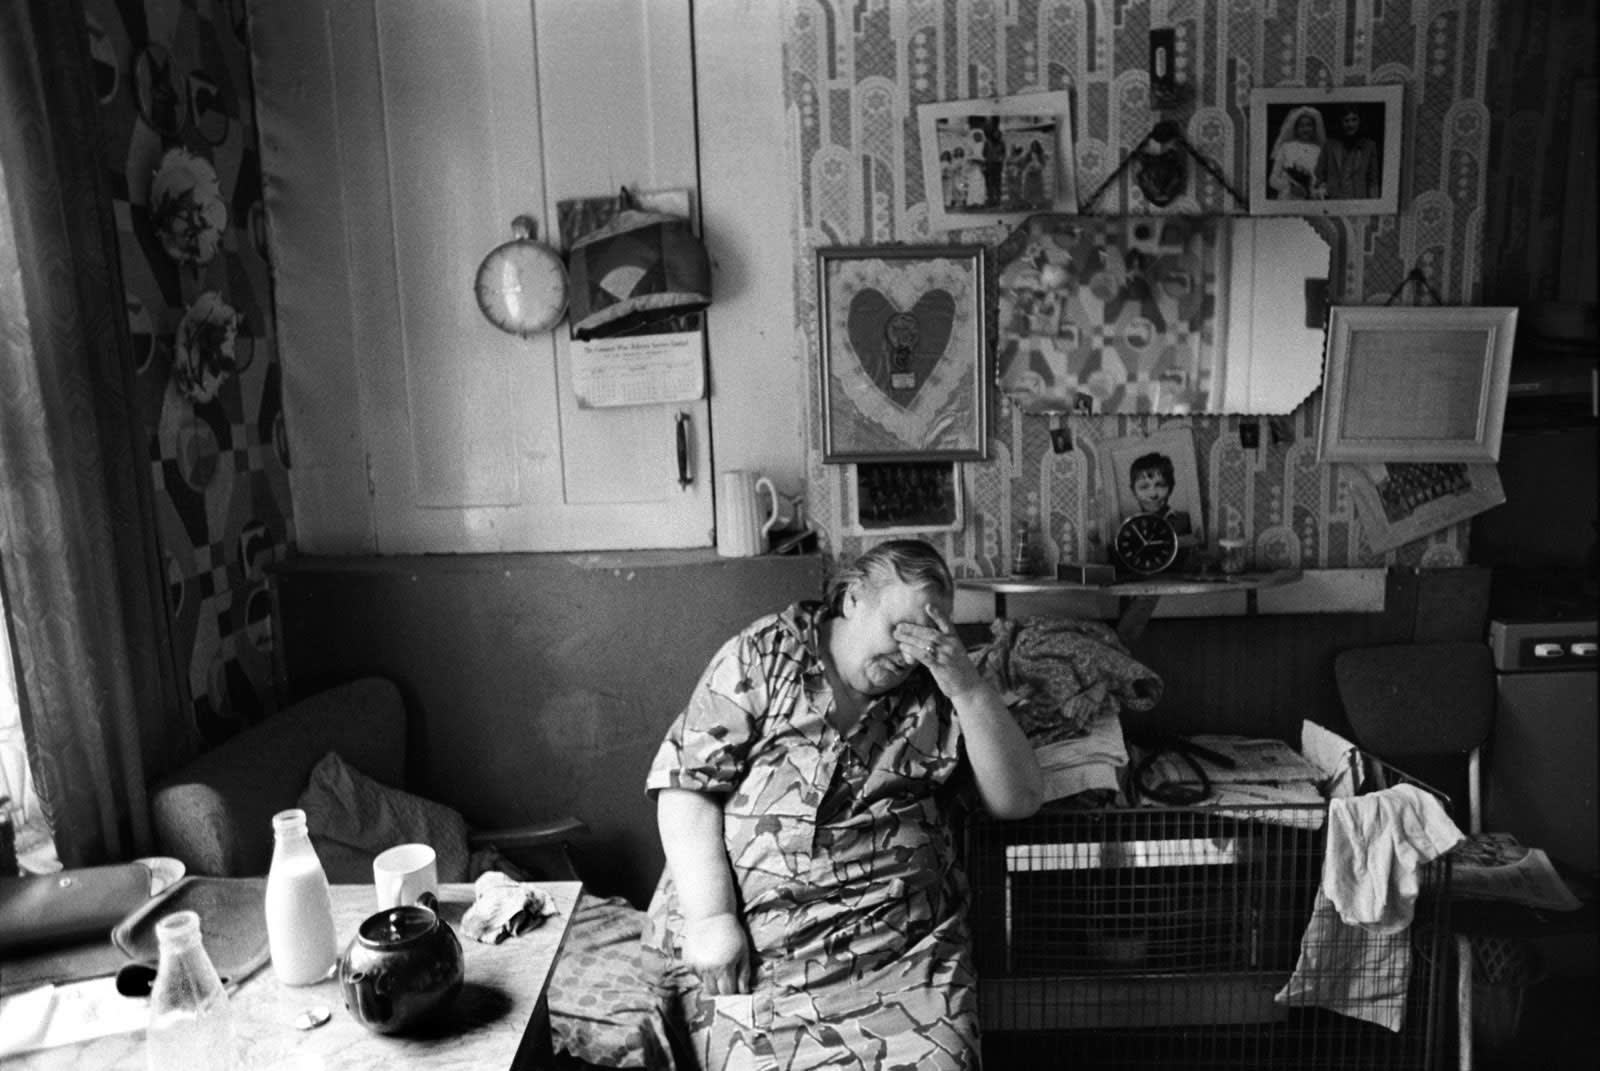 Homer Sykes, Peabody estate, woman at home, East London, 1975